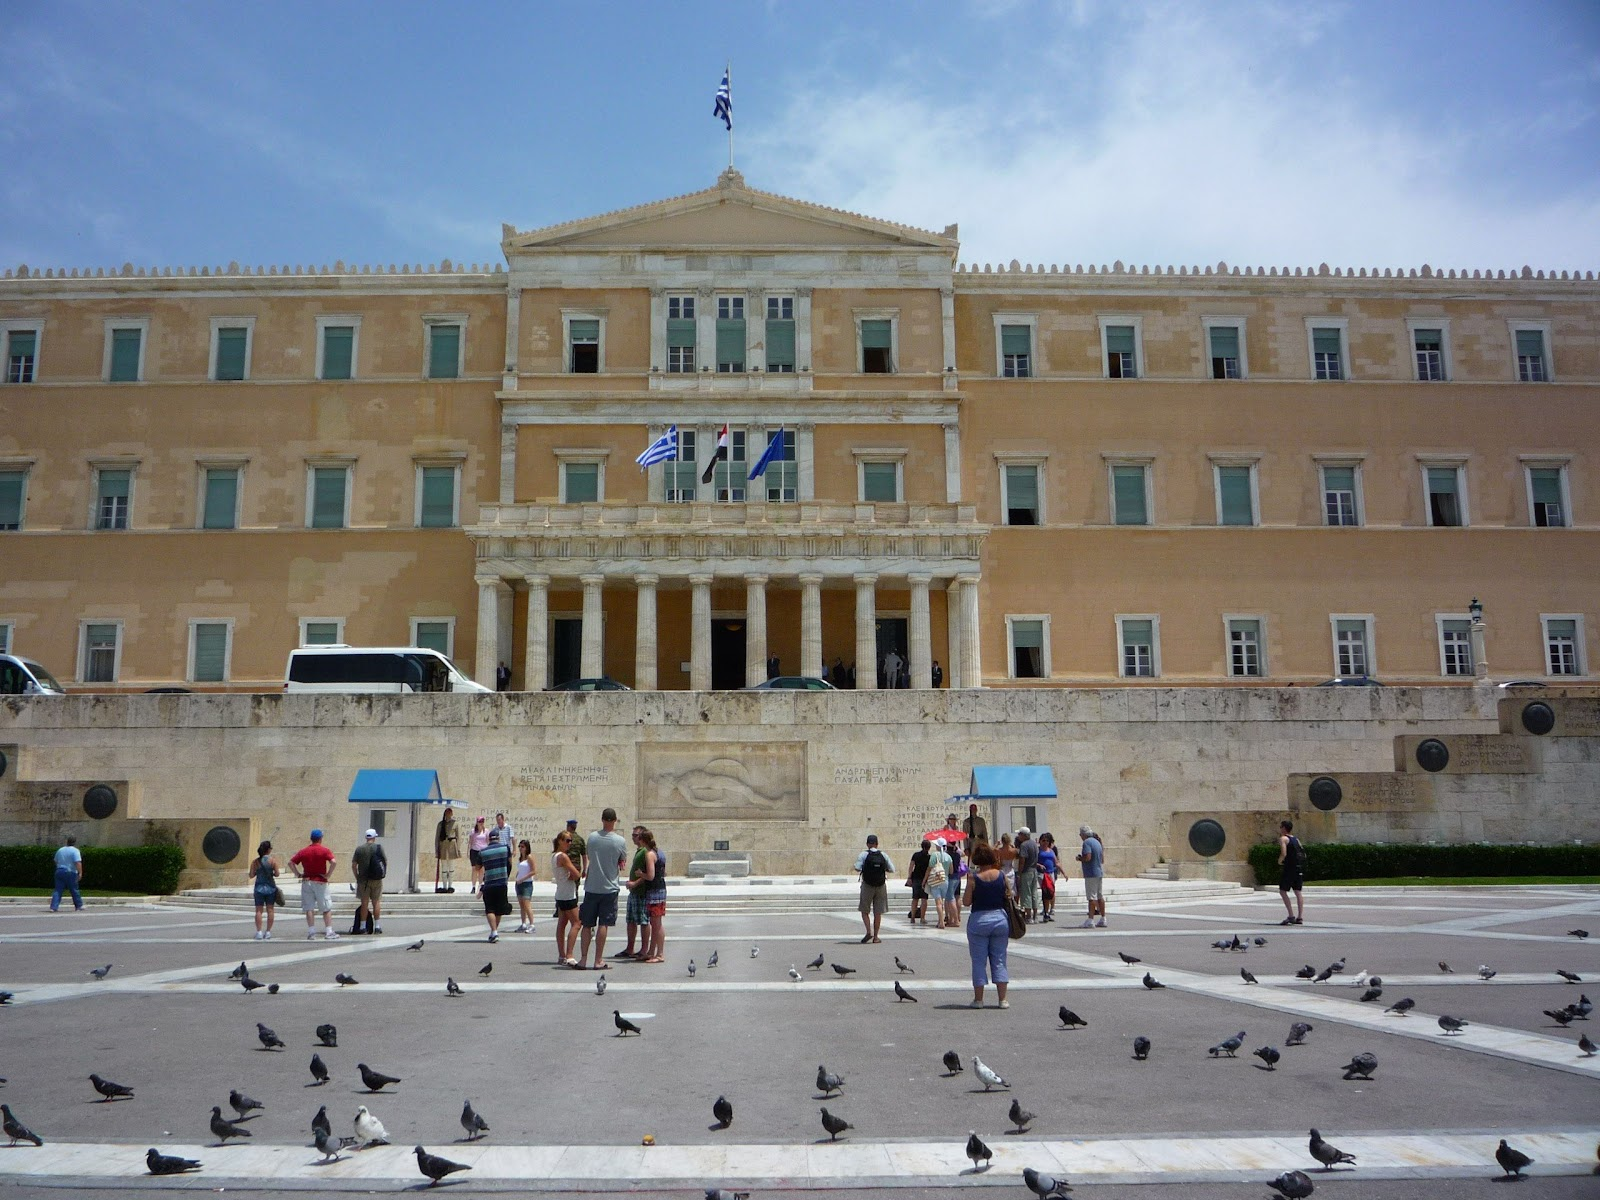 central-square-of-the-constitution-in-athens.jpg